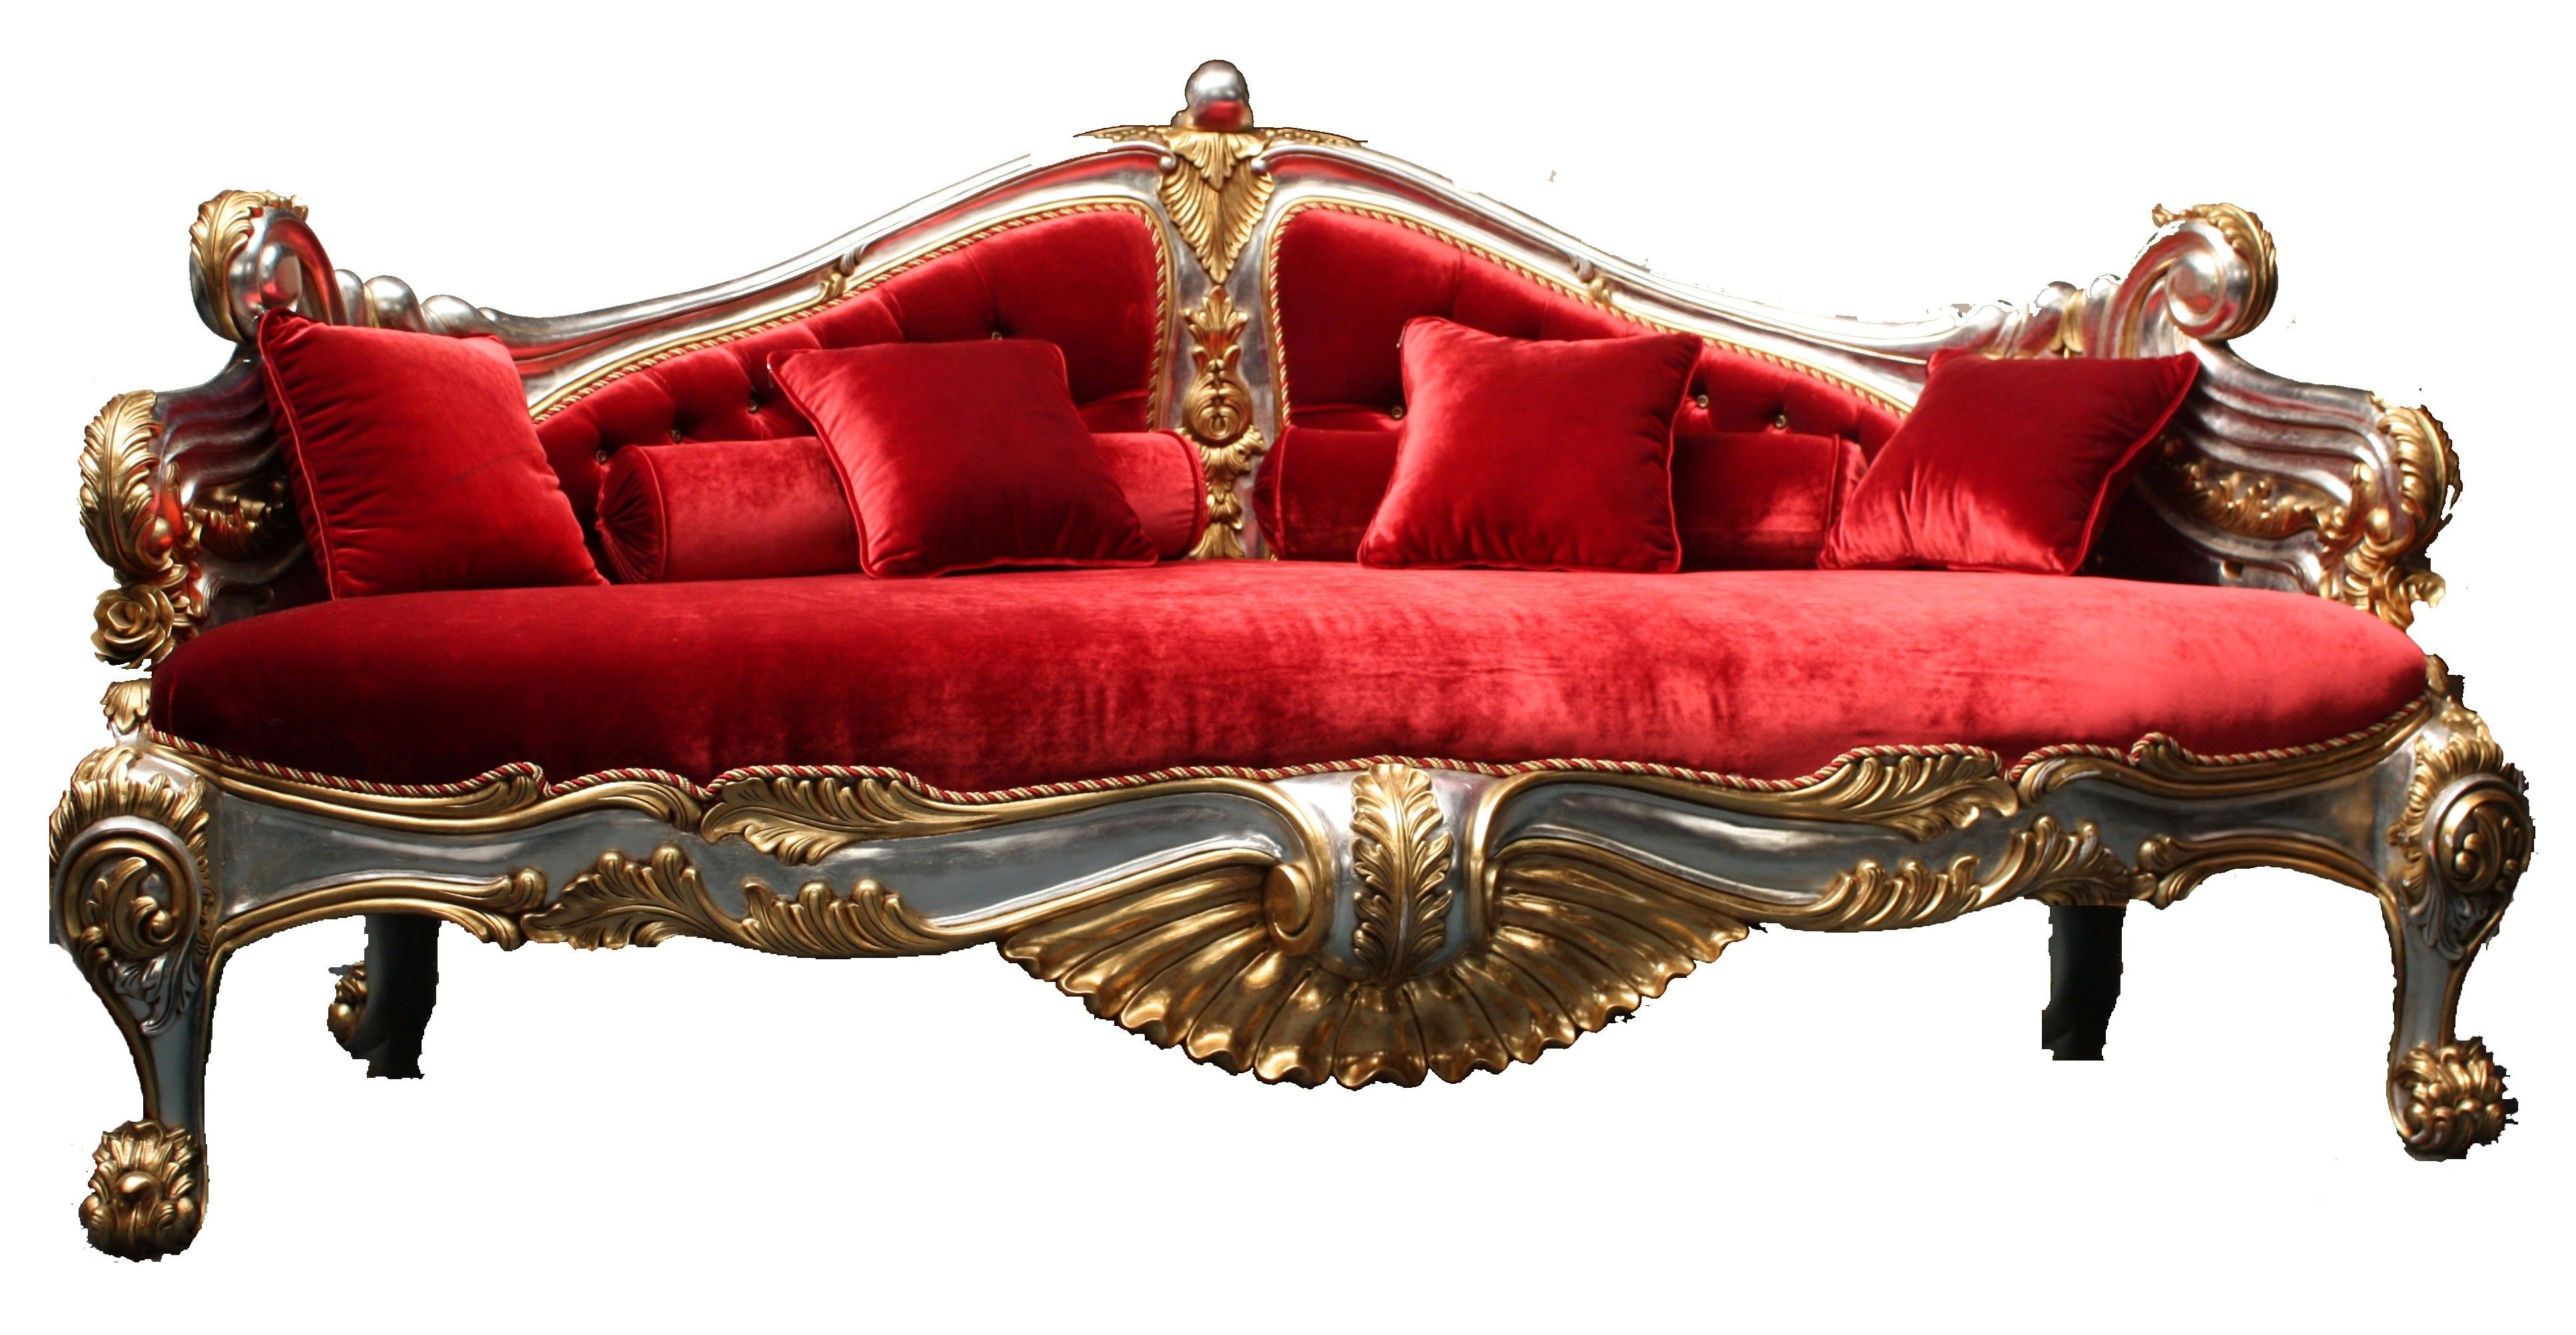 Titanic Sofa Furniture Pinterest Titanic And Luxury Furniture # Muebles Titanic